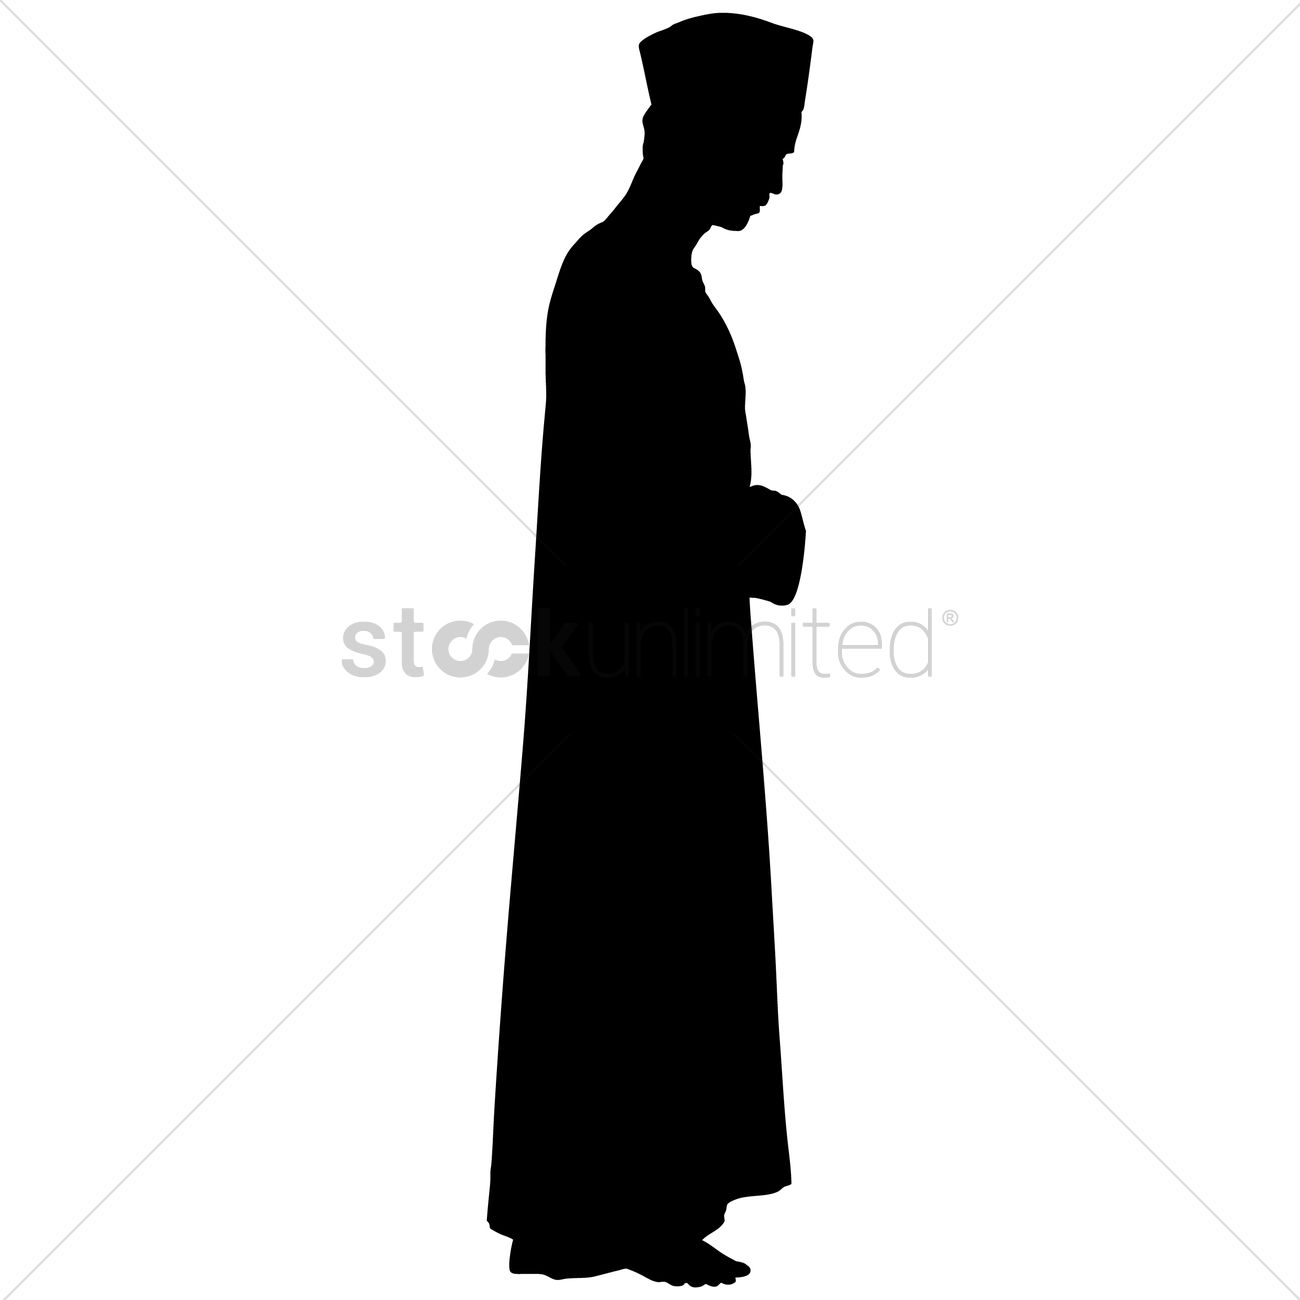 1300x1300 Silhouette Of A Man Praying Vector Image